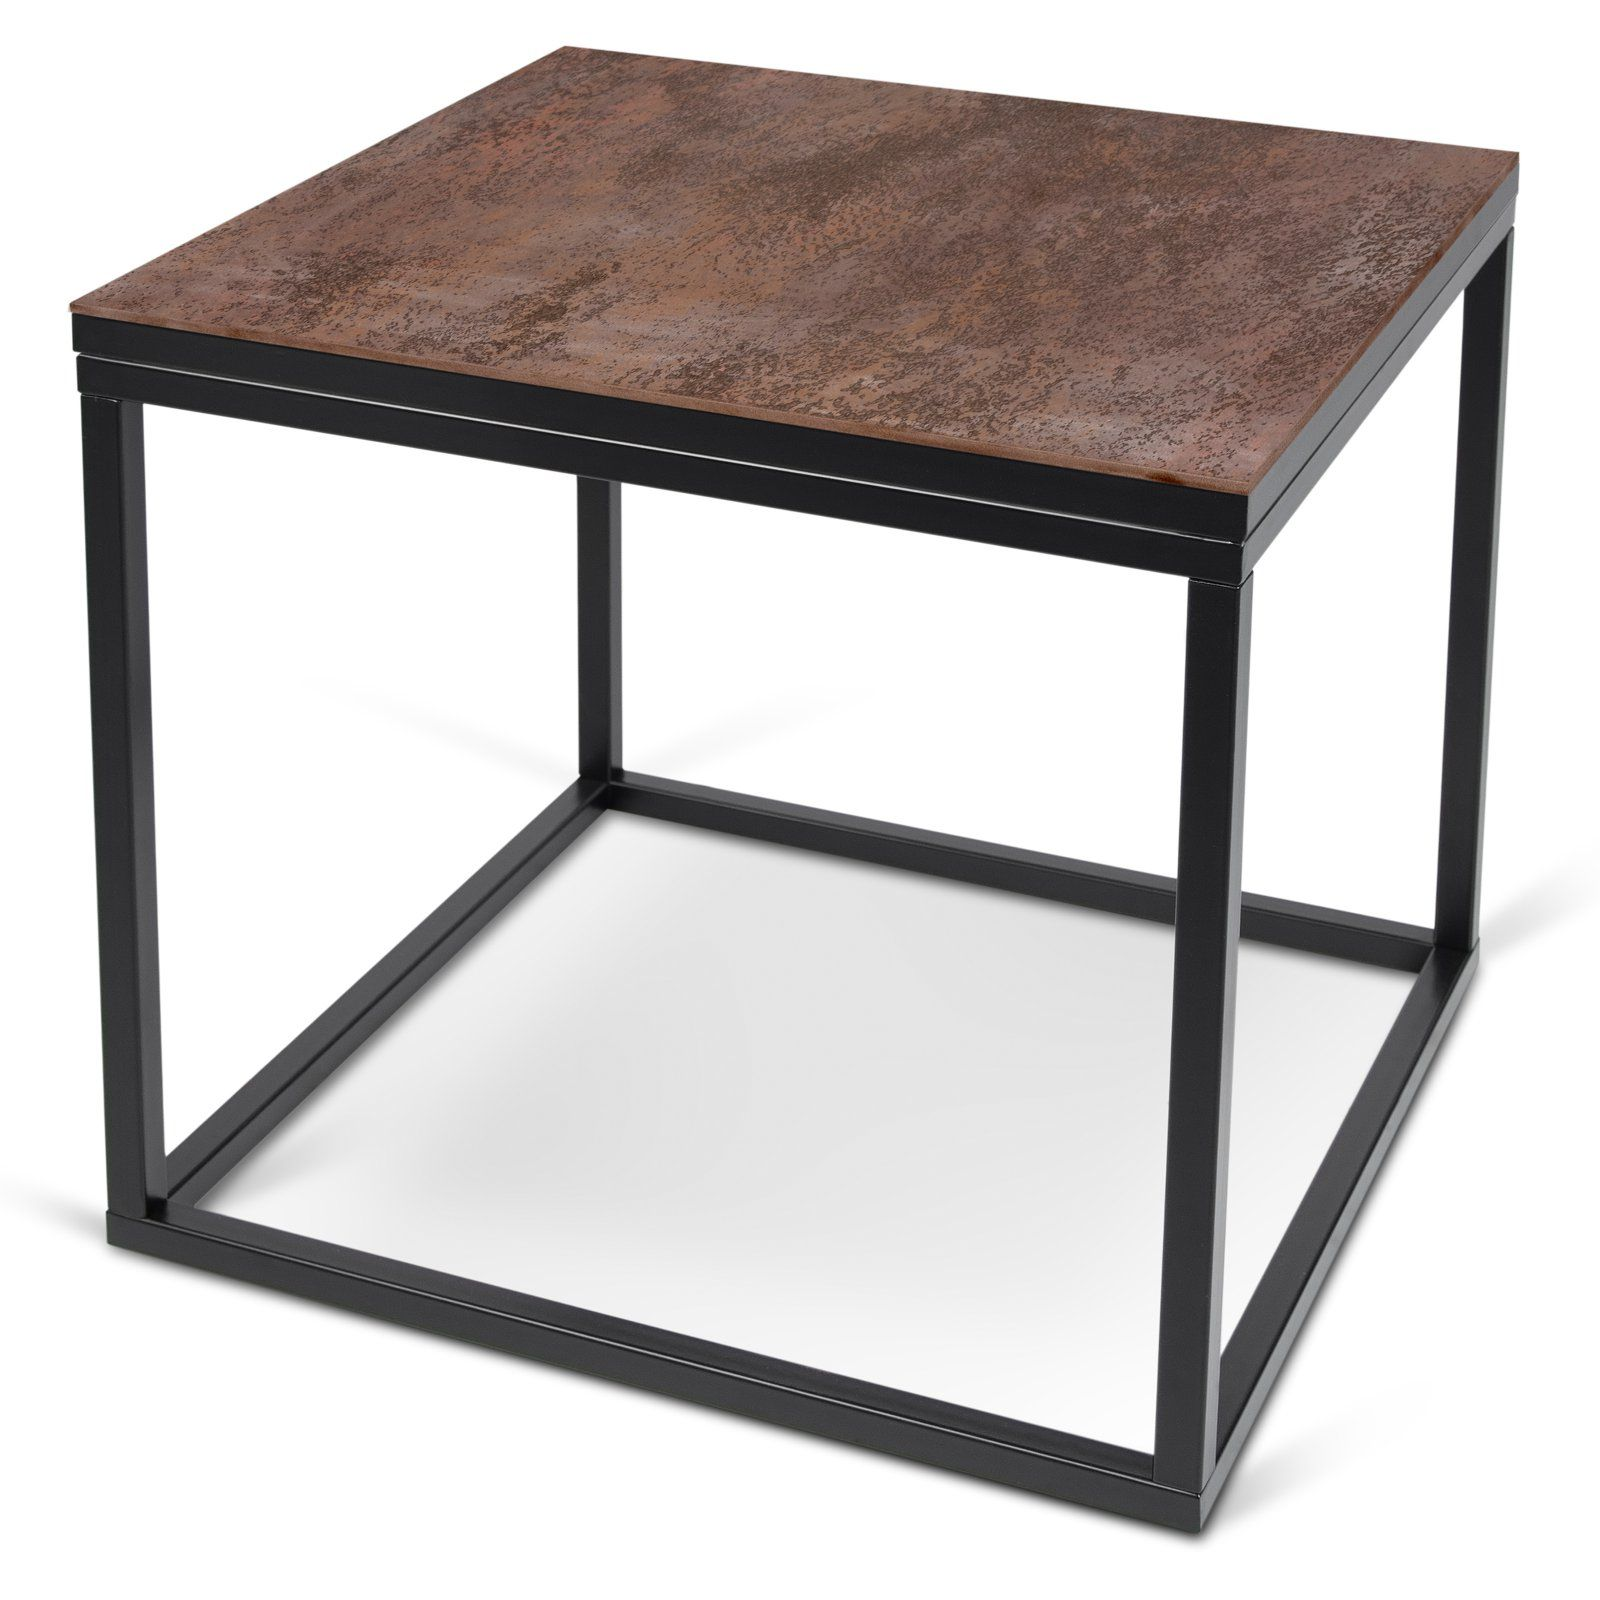 Tema Furniture Sigma Side Table Table End Tables Ceramic Table